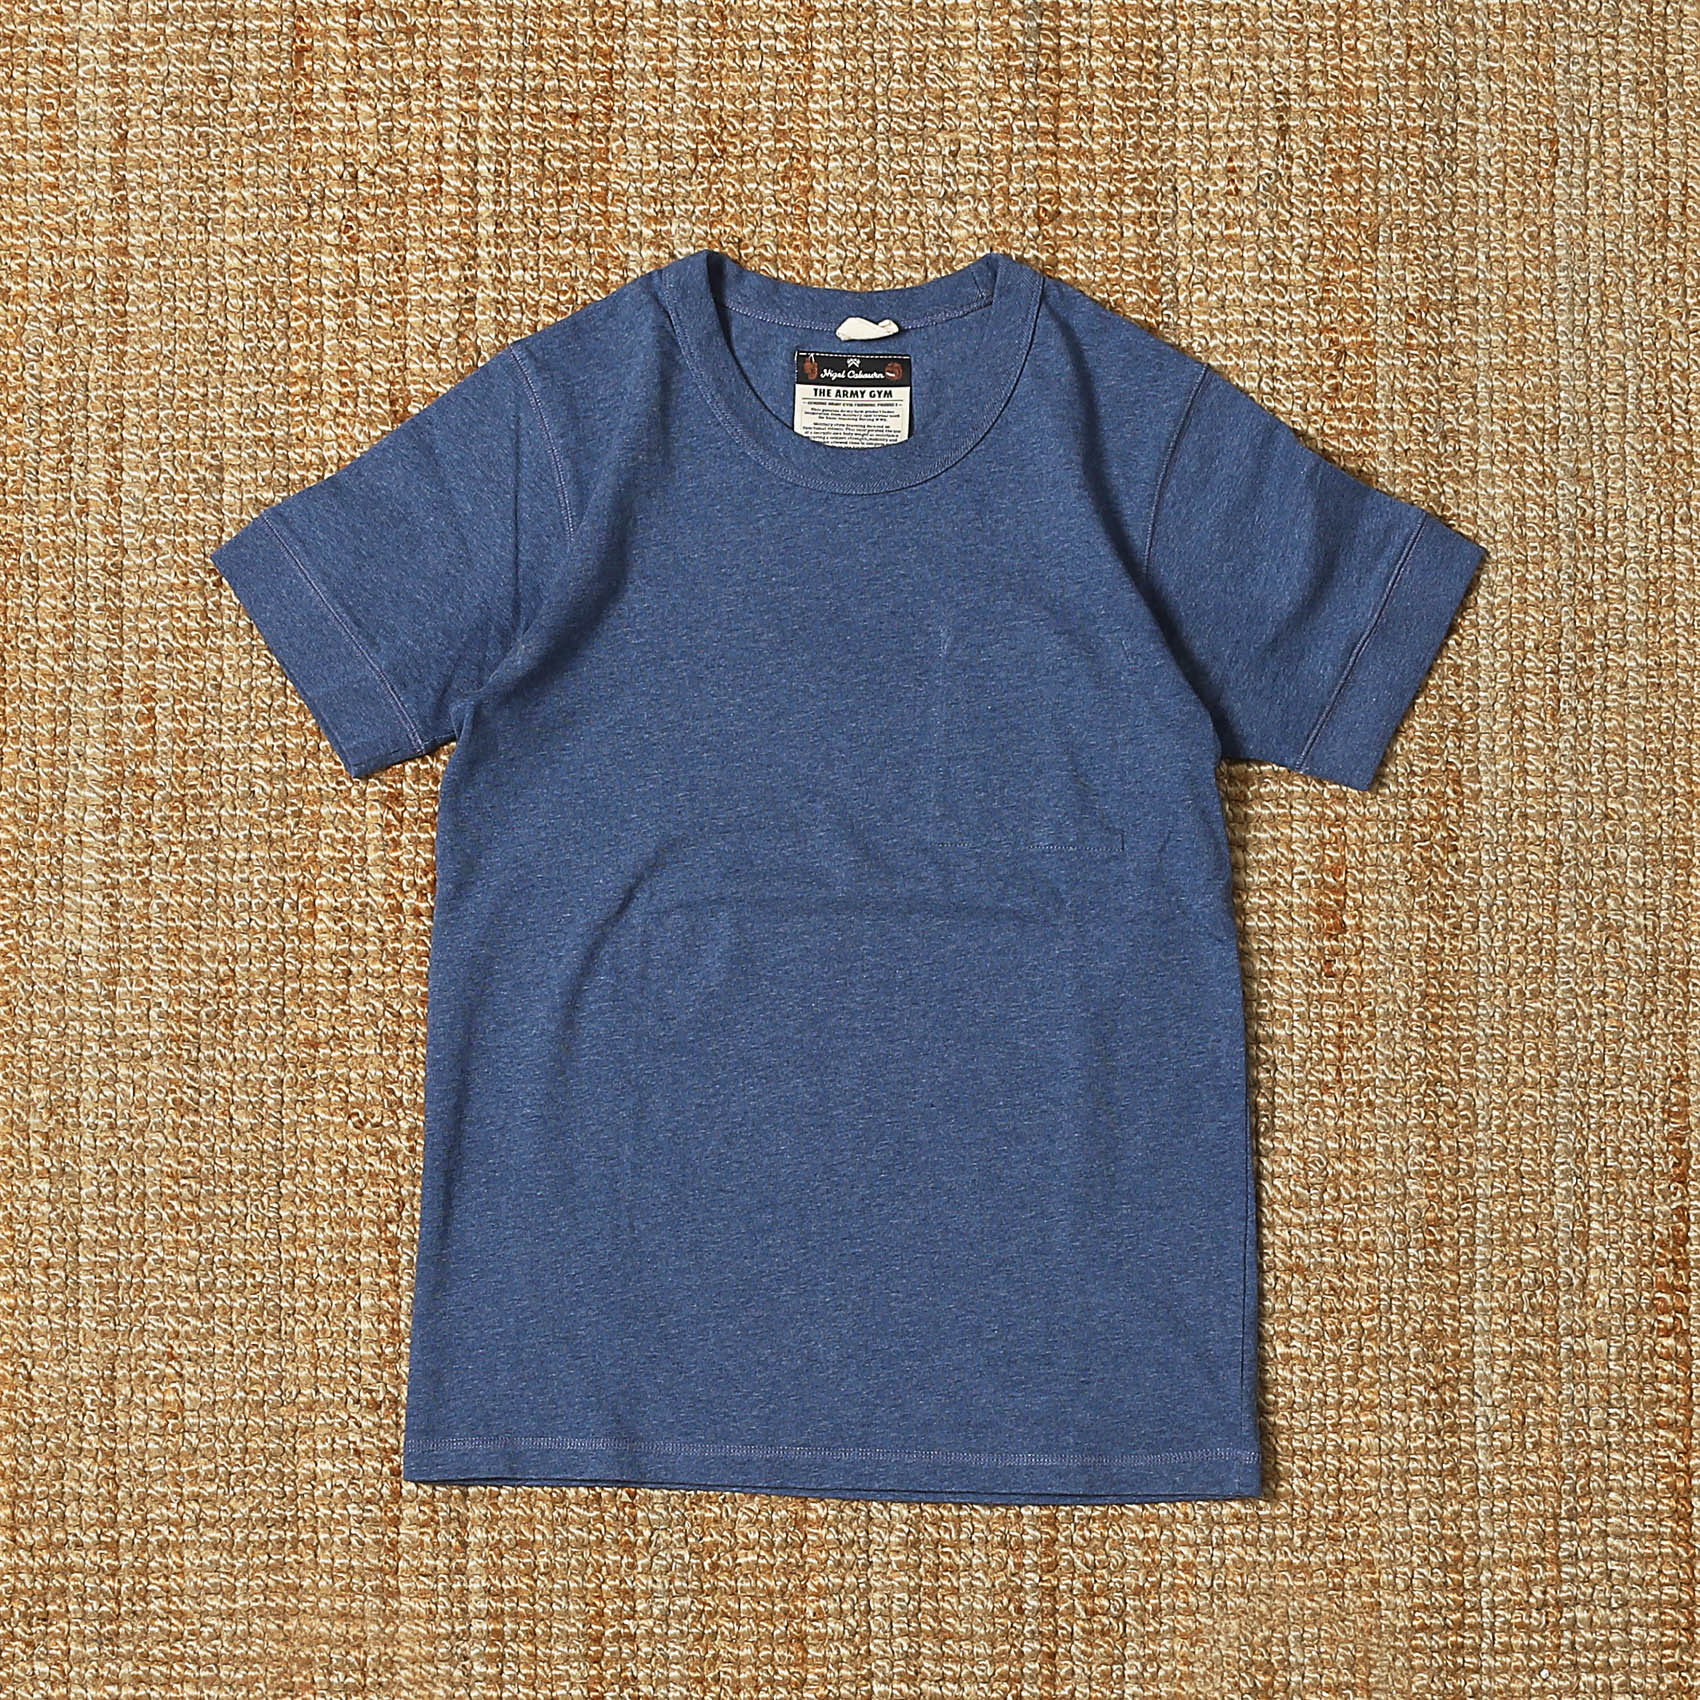 NIGEL CABOURN S/S INNER POCKET TEE - BLUE